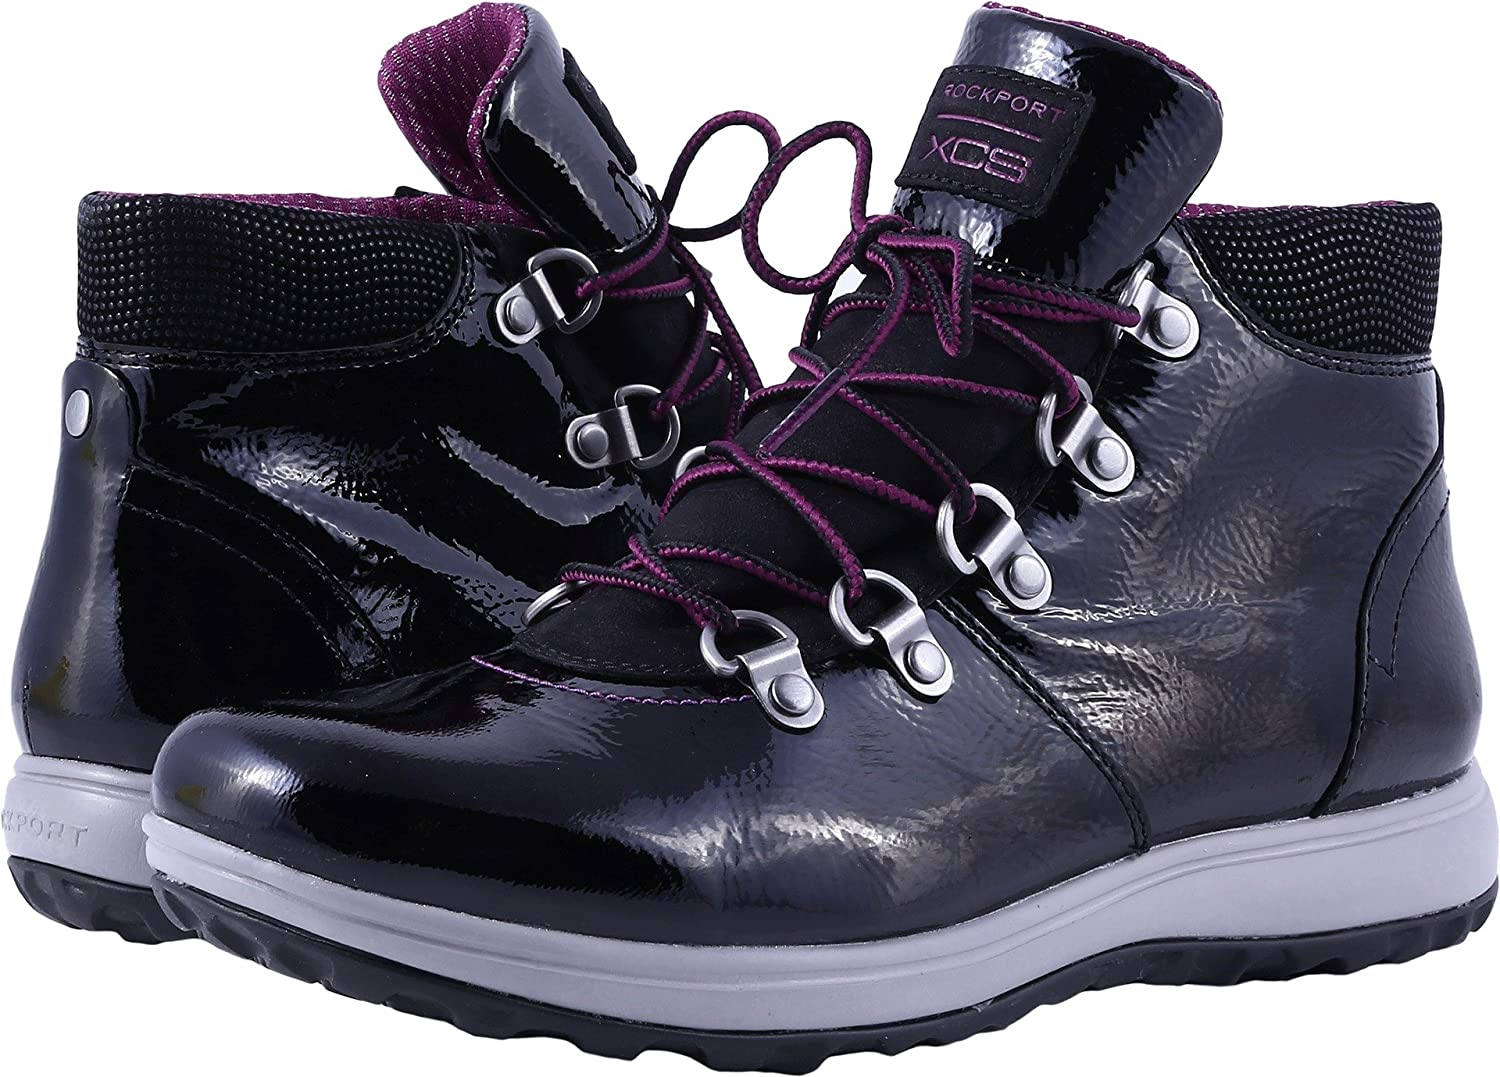 Rockport Women's XCS Britt Alpine Snow Boot B01NB0LV8Y 5.5 B(M) US|Black